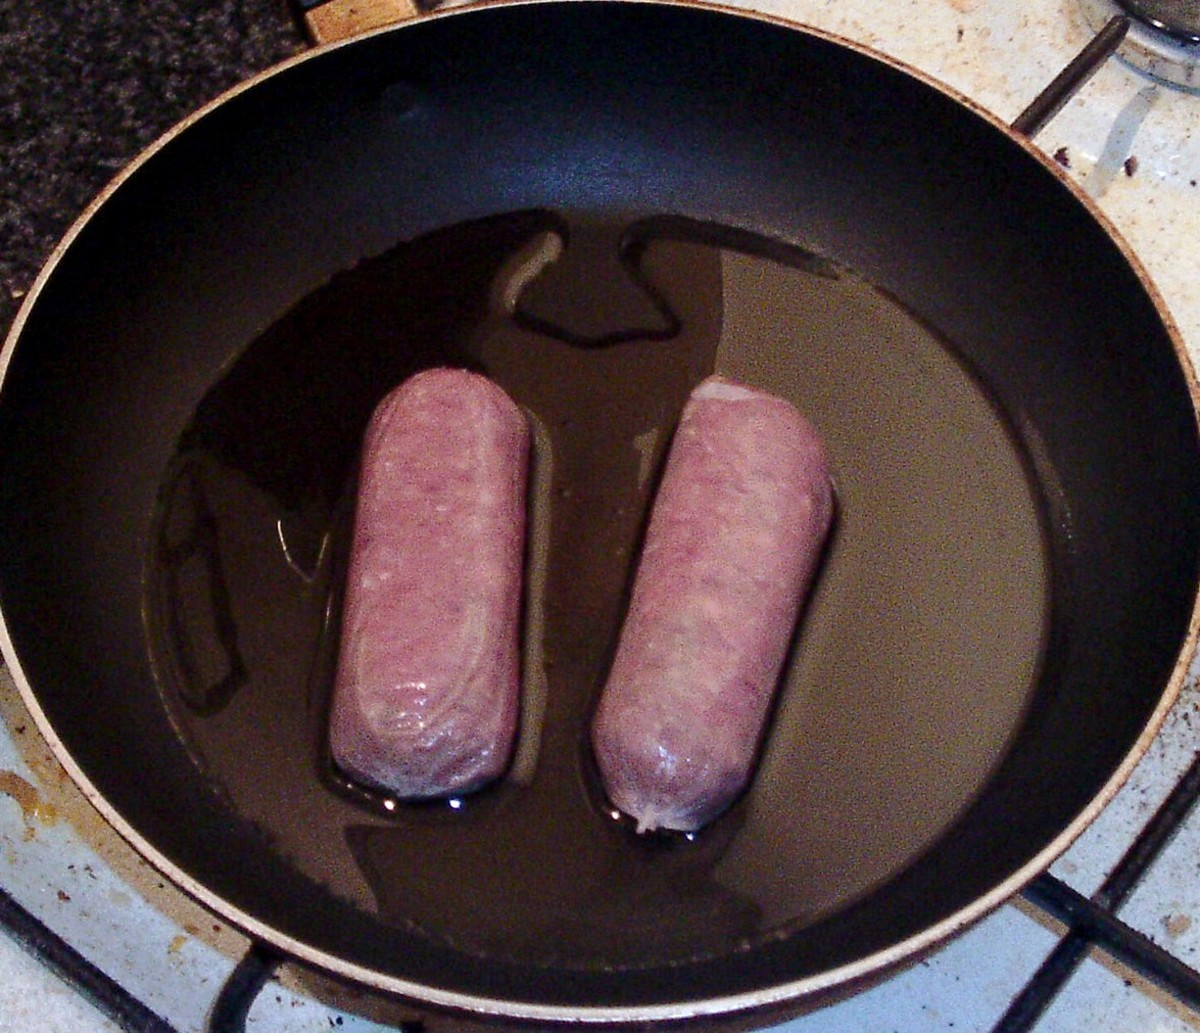 Venison sausages are added to warm oil in a non-stick frying pan.